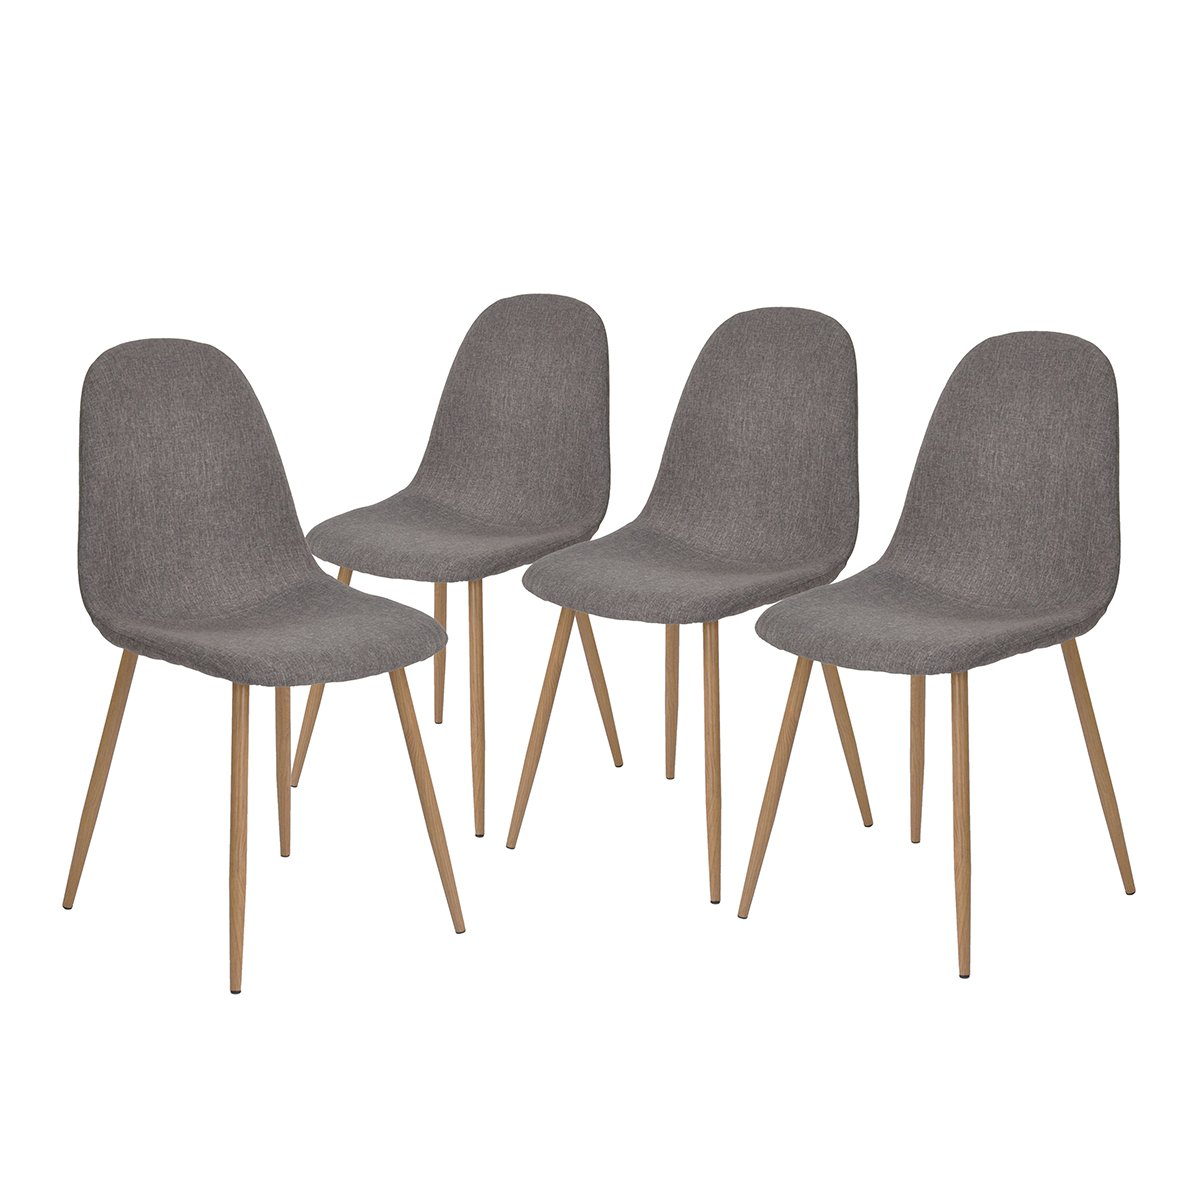 GreenForest Dining Side Chairs Strong Metal Legs Fabric Cushion Seat and Back for Dining Room Chairs Set of 4,Gray